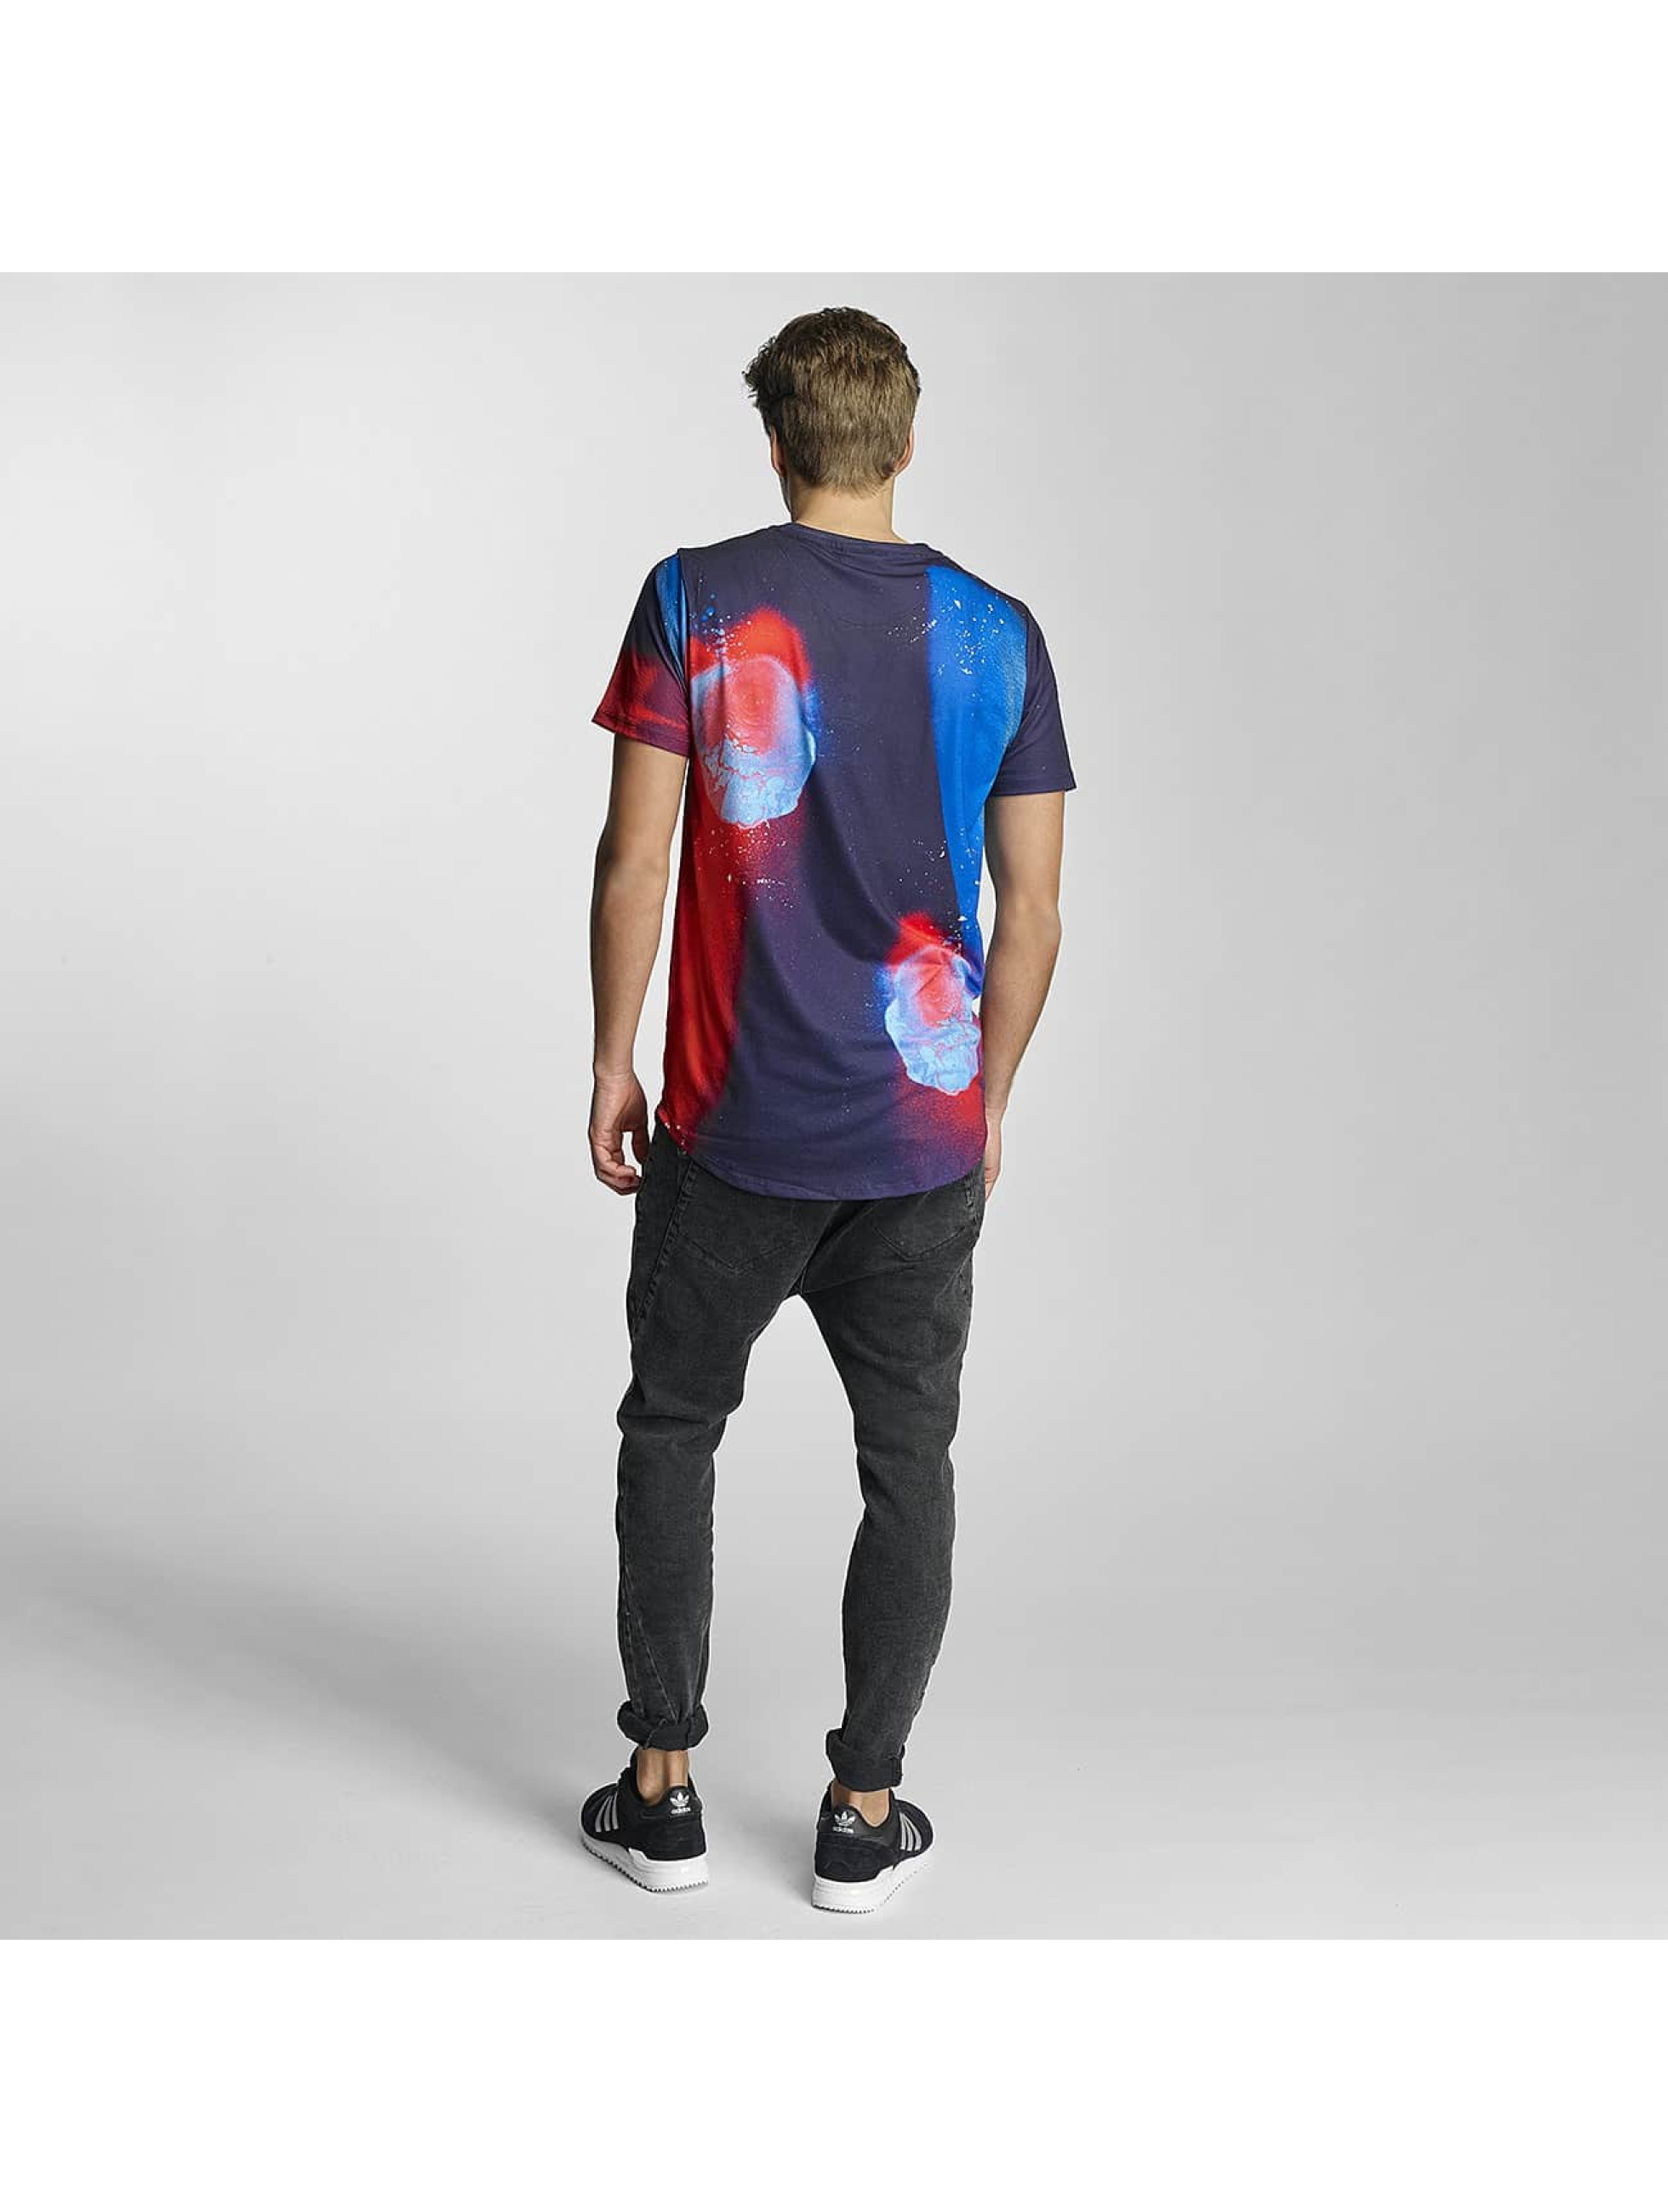 HYPE T-Shirt Meteor colored